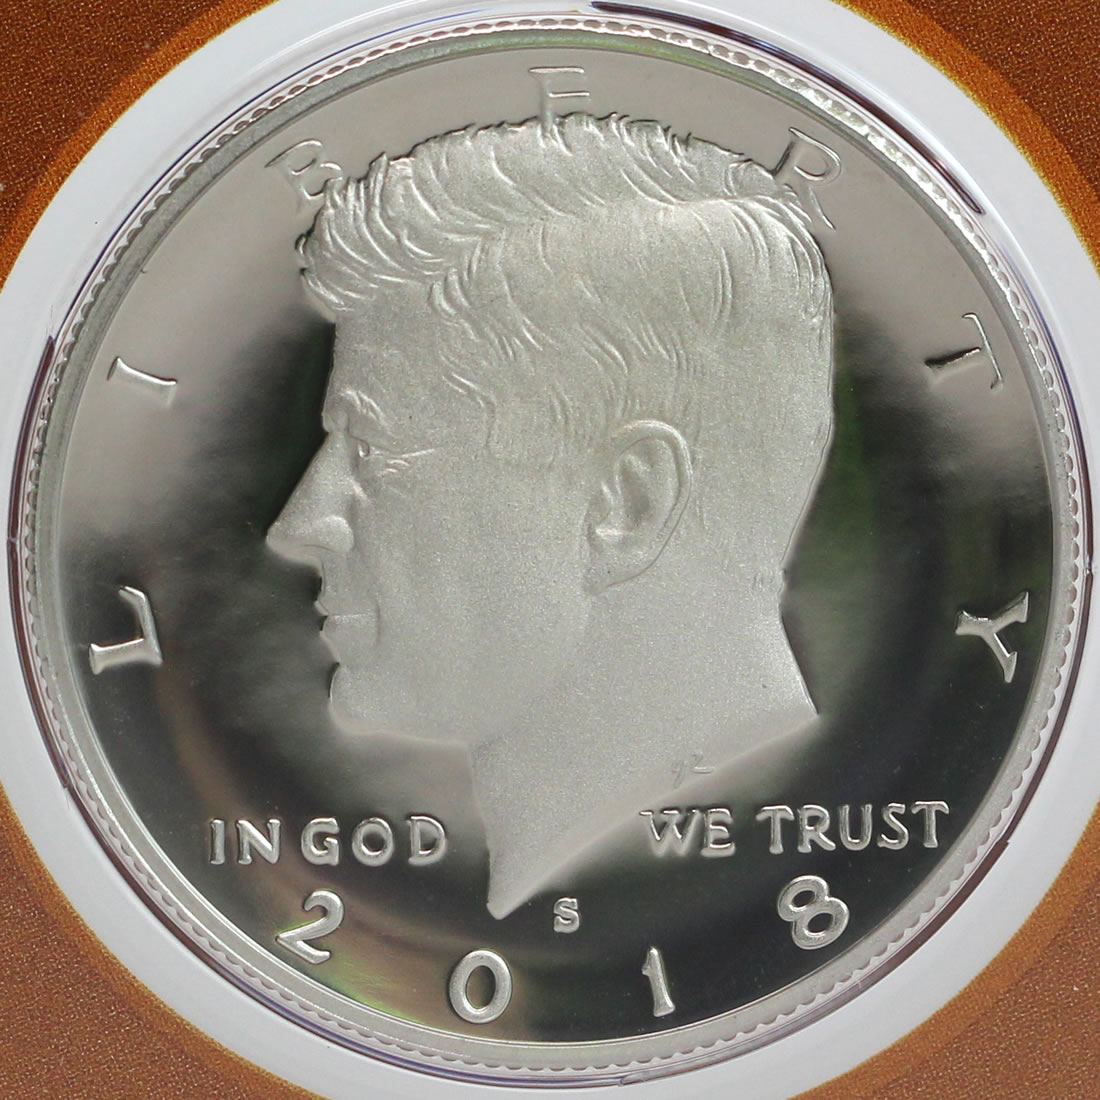 Mint Roll Coins 2001 D President Kennedy Half Dollar Fifty Cent Coin Money U.S